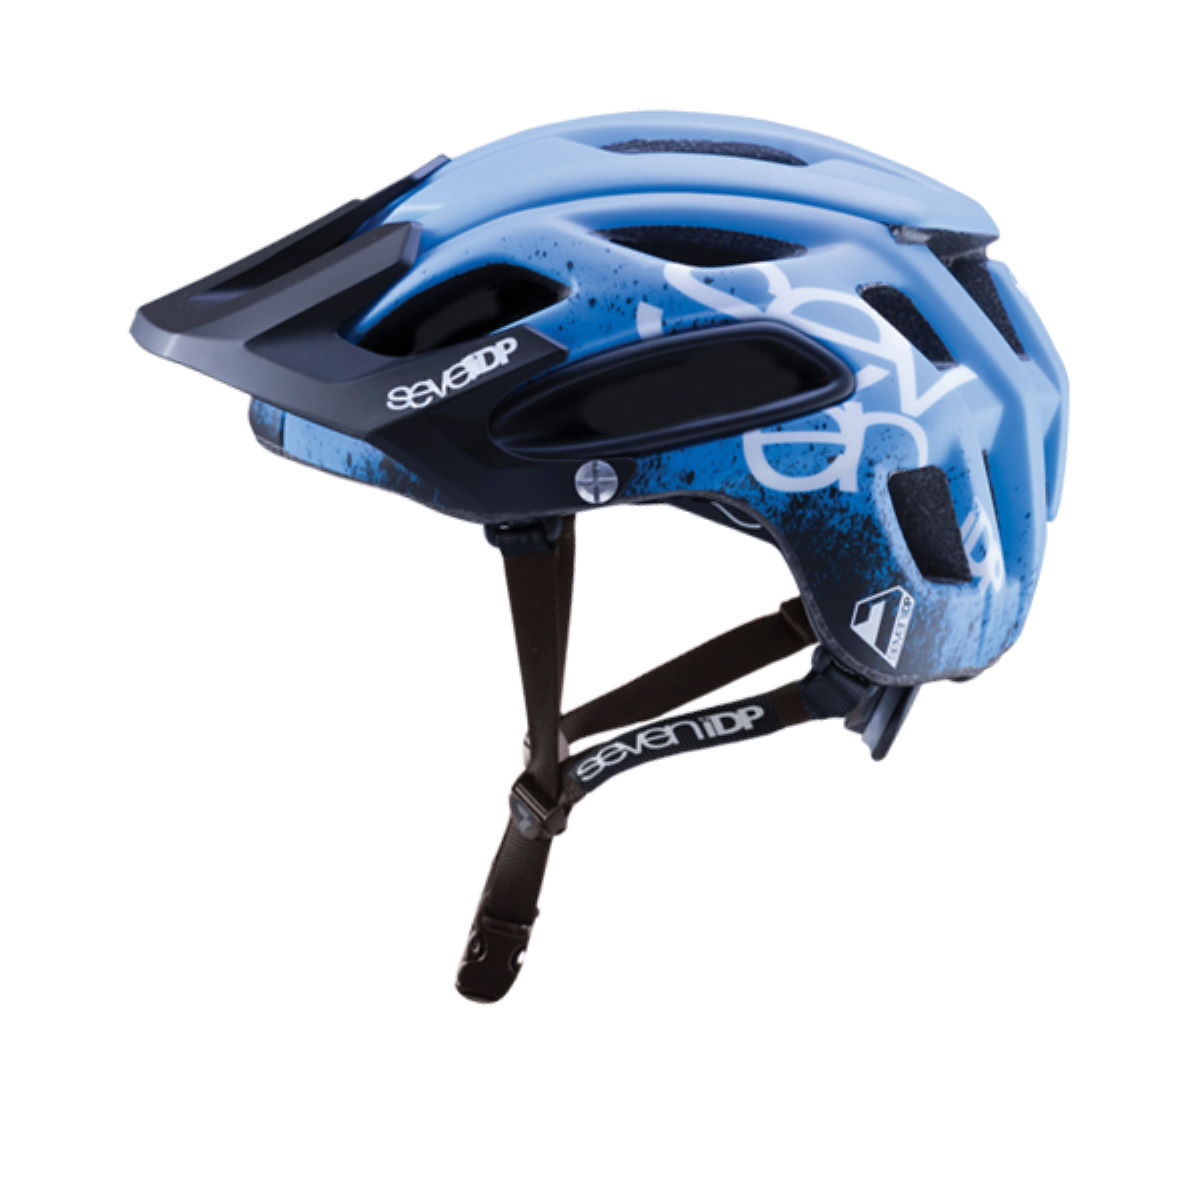 Casque 7 iDP M2 Gradient - XS/S Blue - Black - White Casques VTT